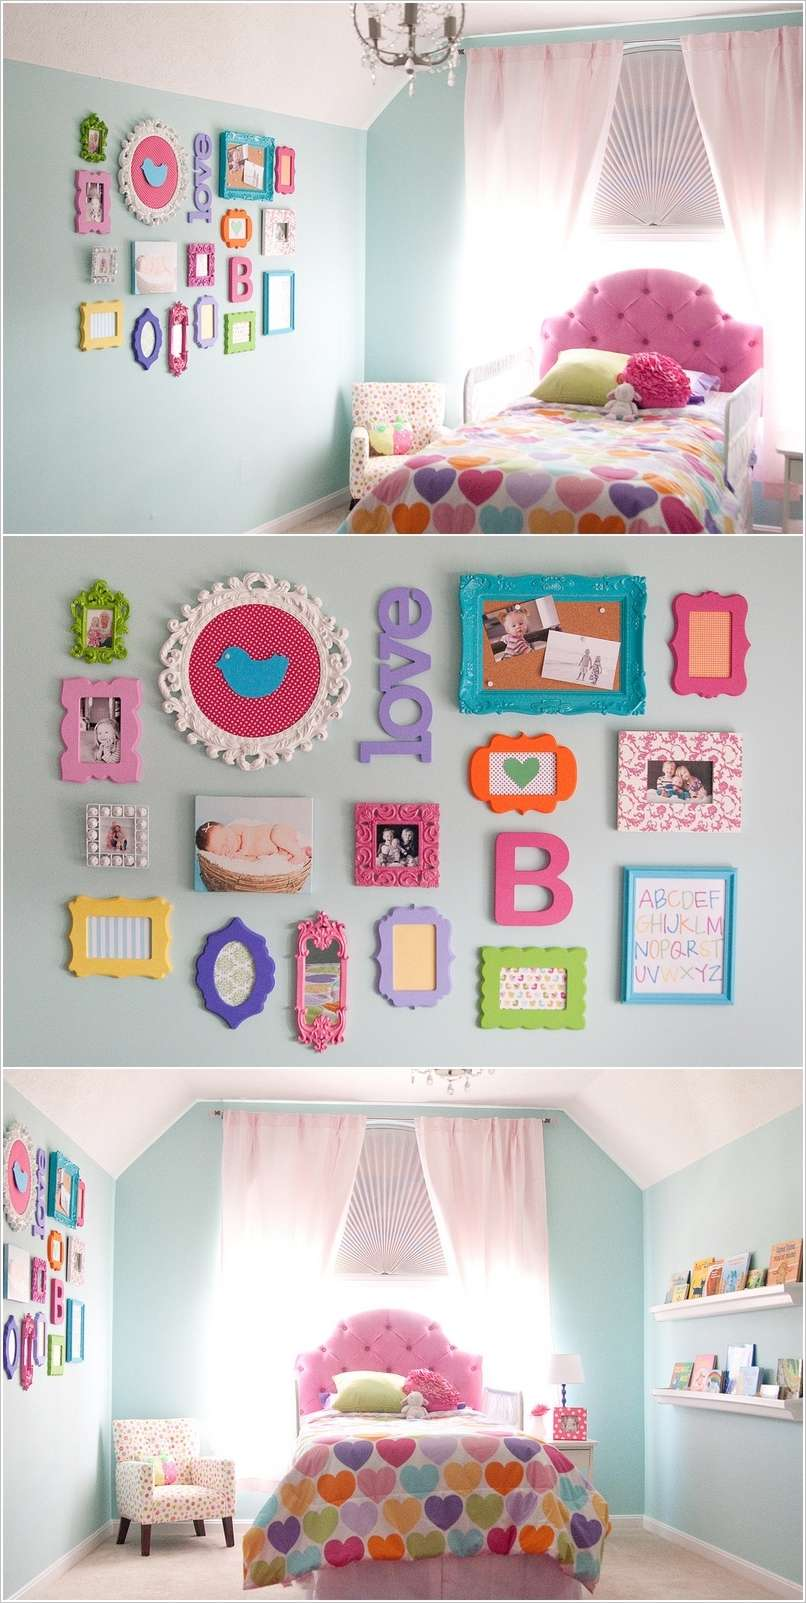 10 cute ideas to decorate a toddler girl 39 s room Decorating little girls room